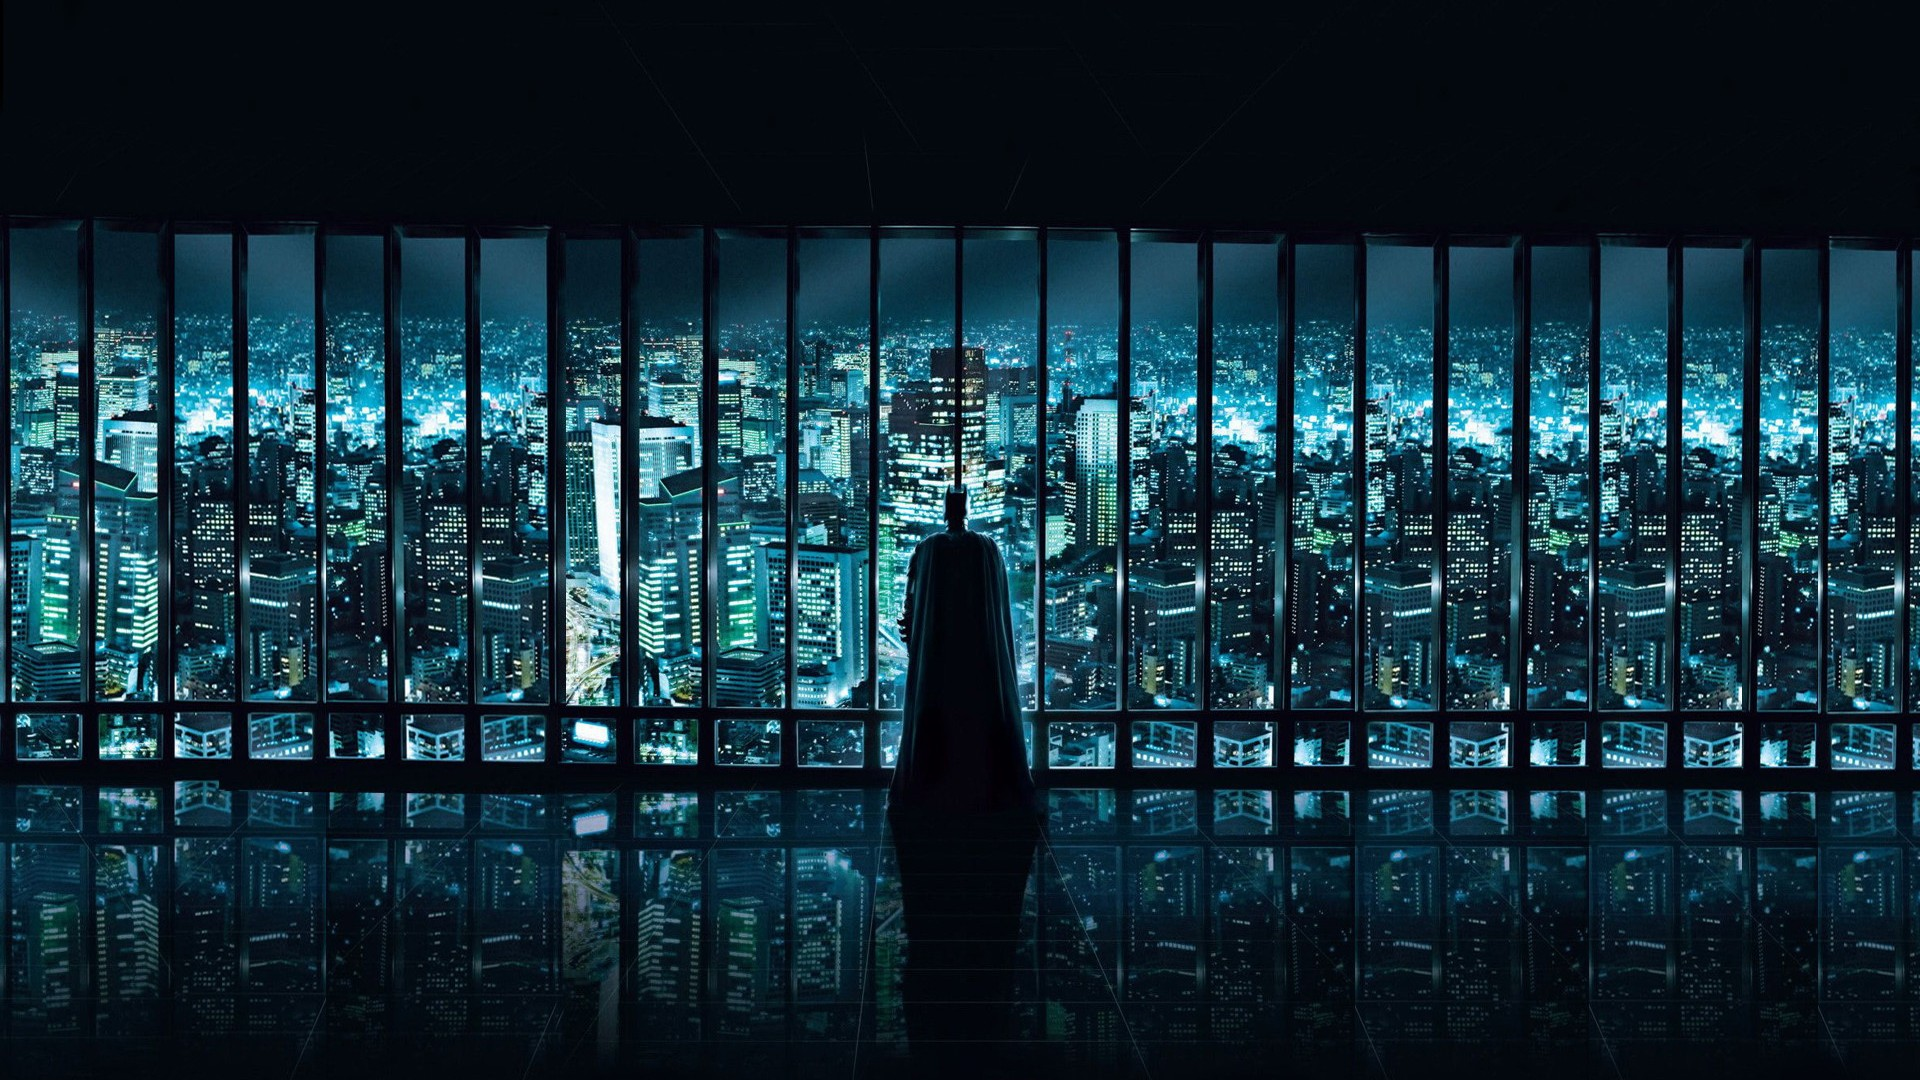 Dark Knight HD backgrounds Wallpaper High Quality 1920x1080